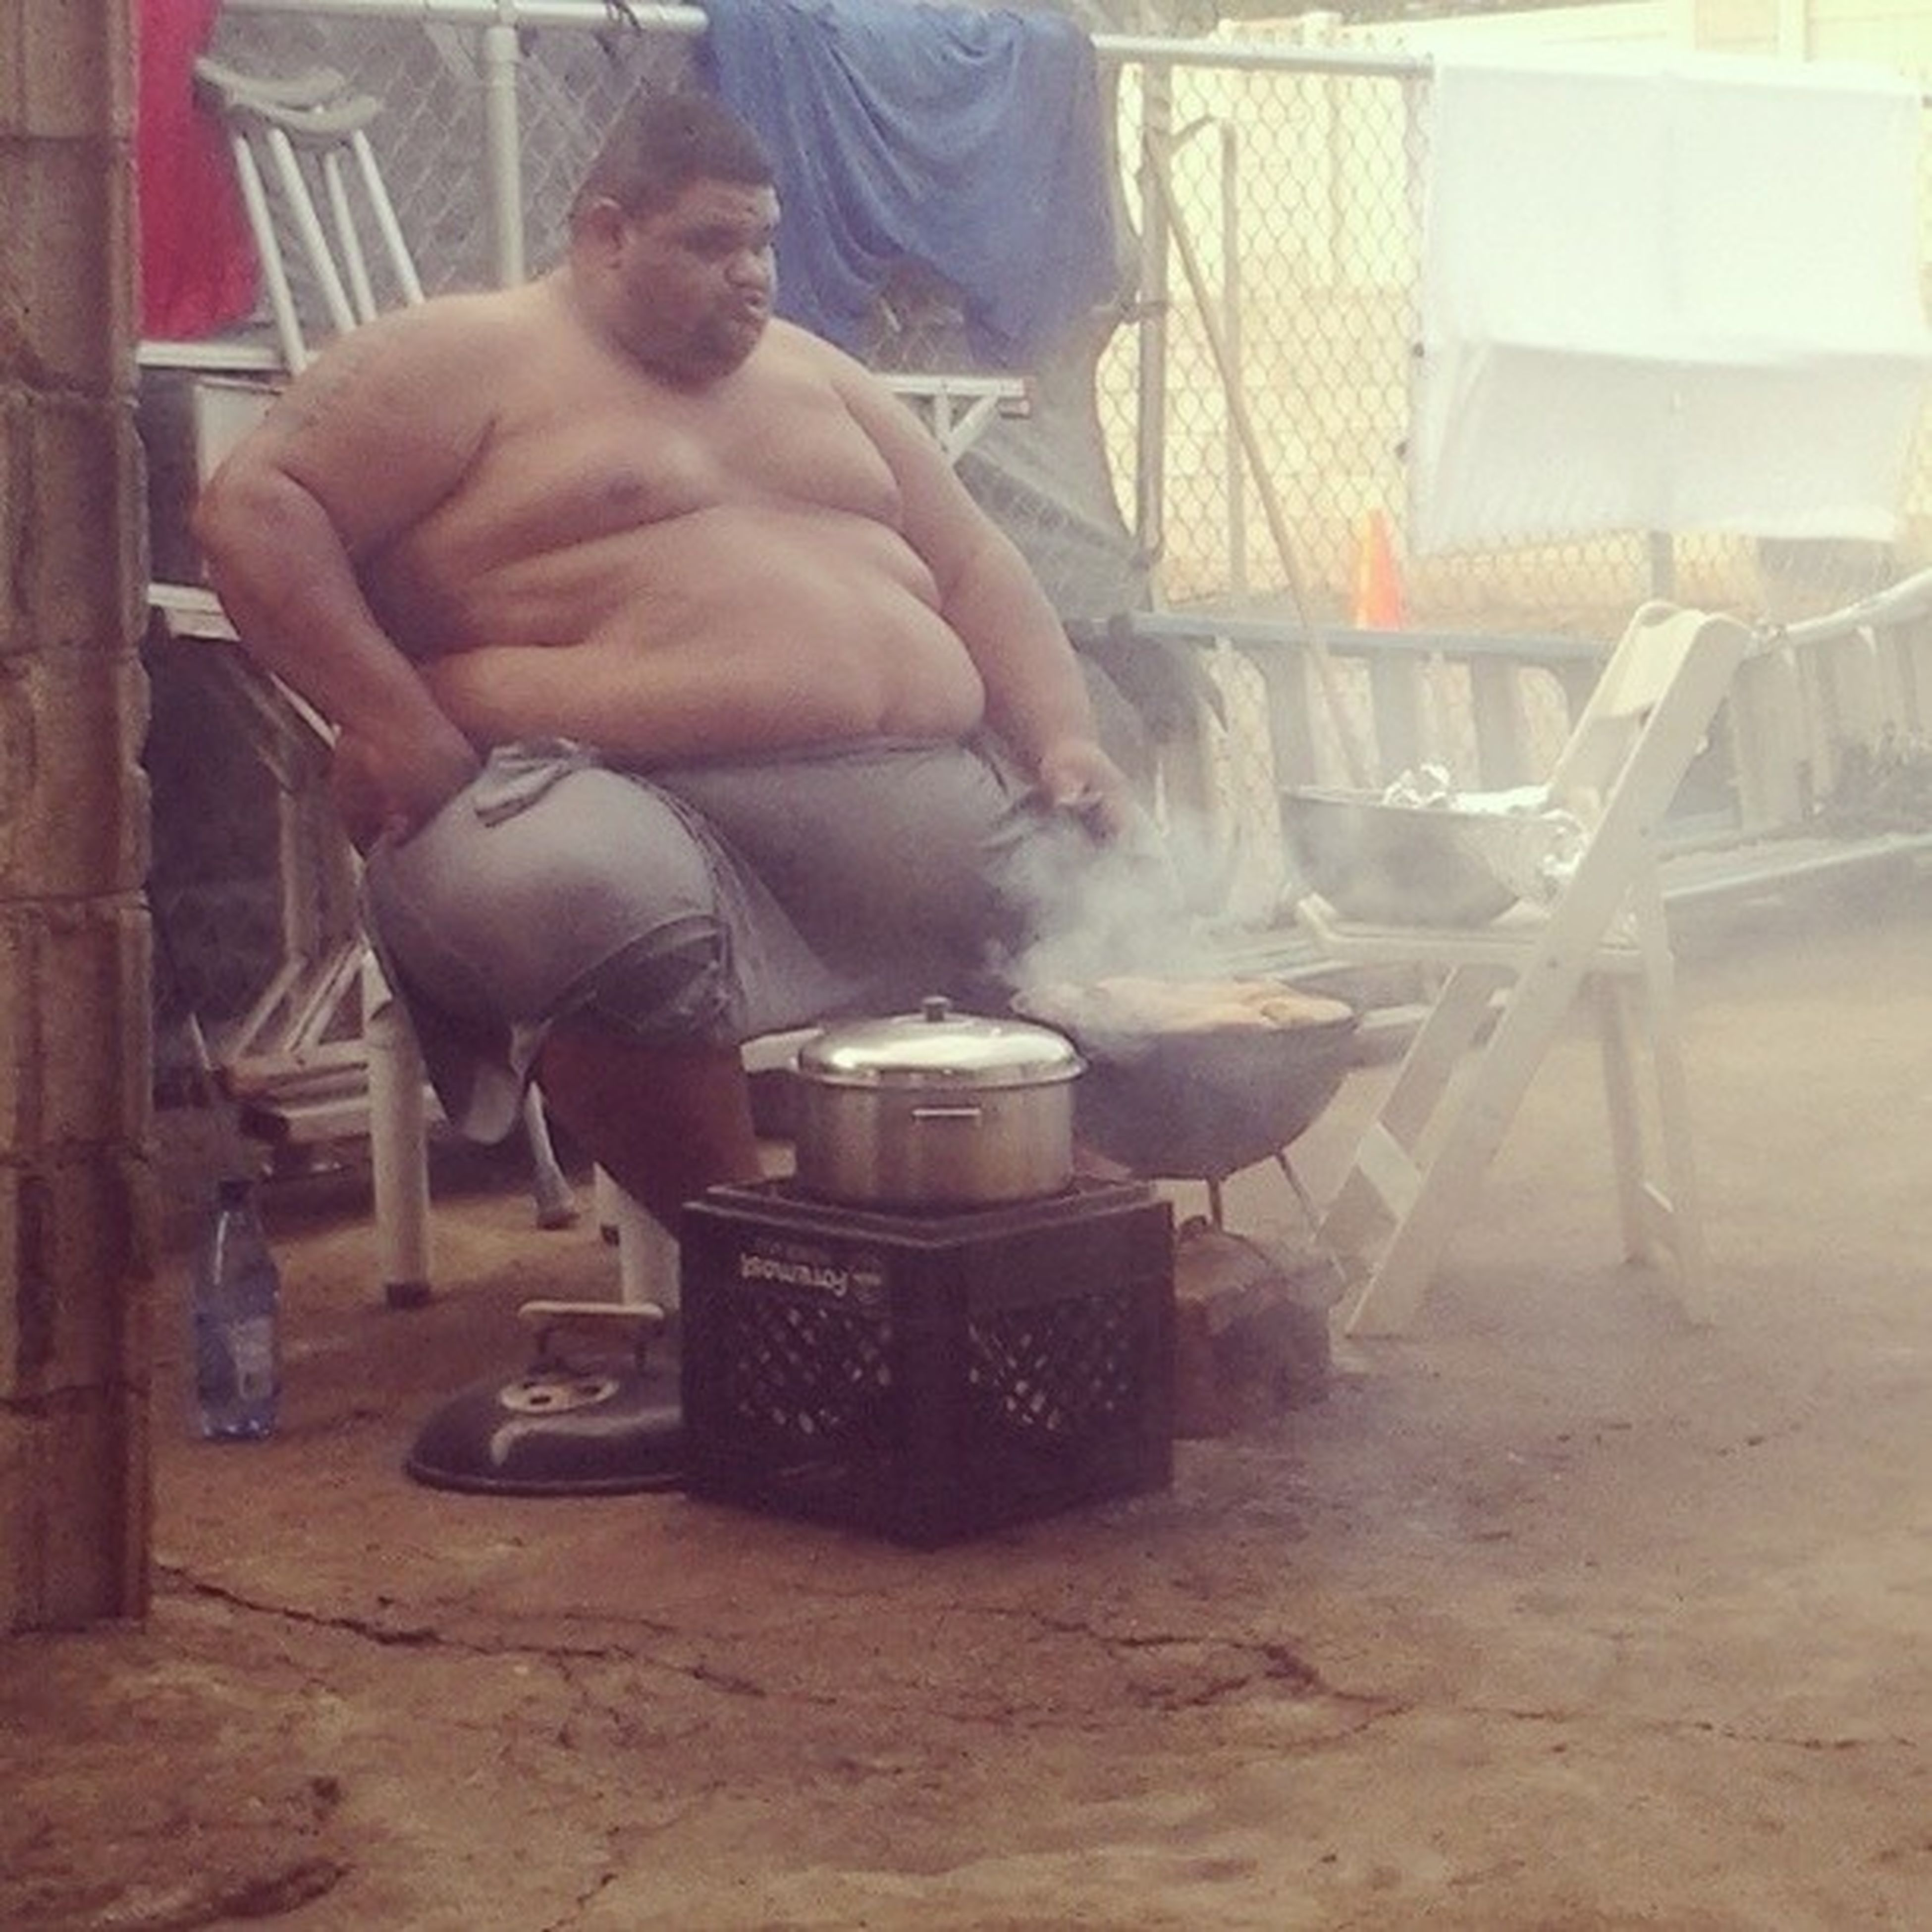 Our skinny chef for the evening! Lmfao. Bigboyyproblemzz Sauceunion Barbq Fire mummum ihungry dinner familystyle